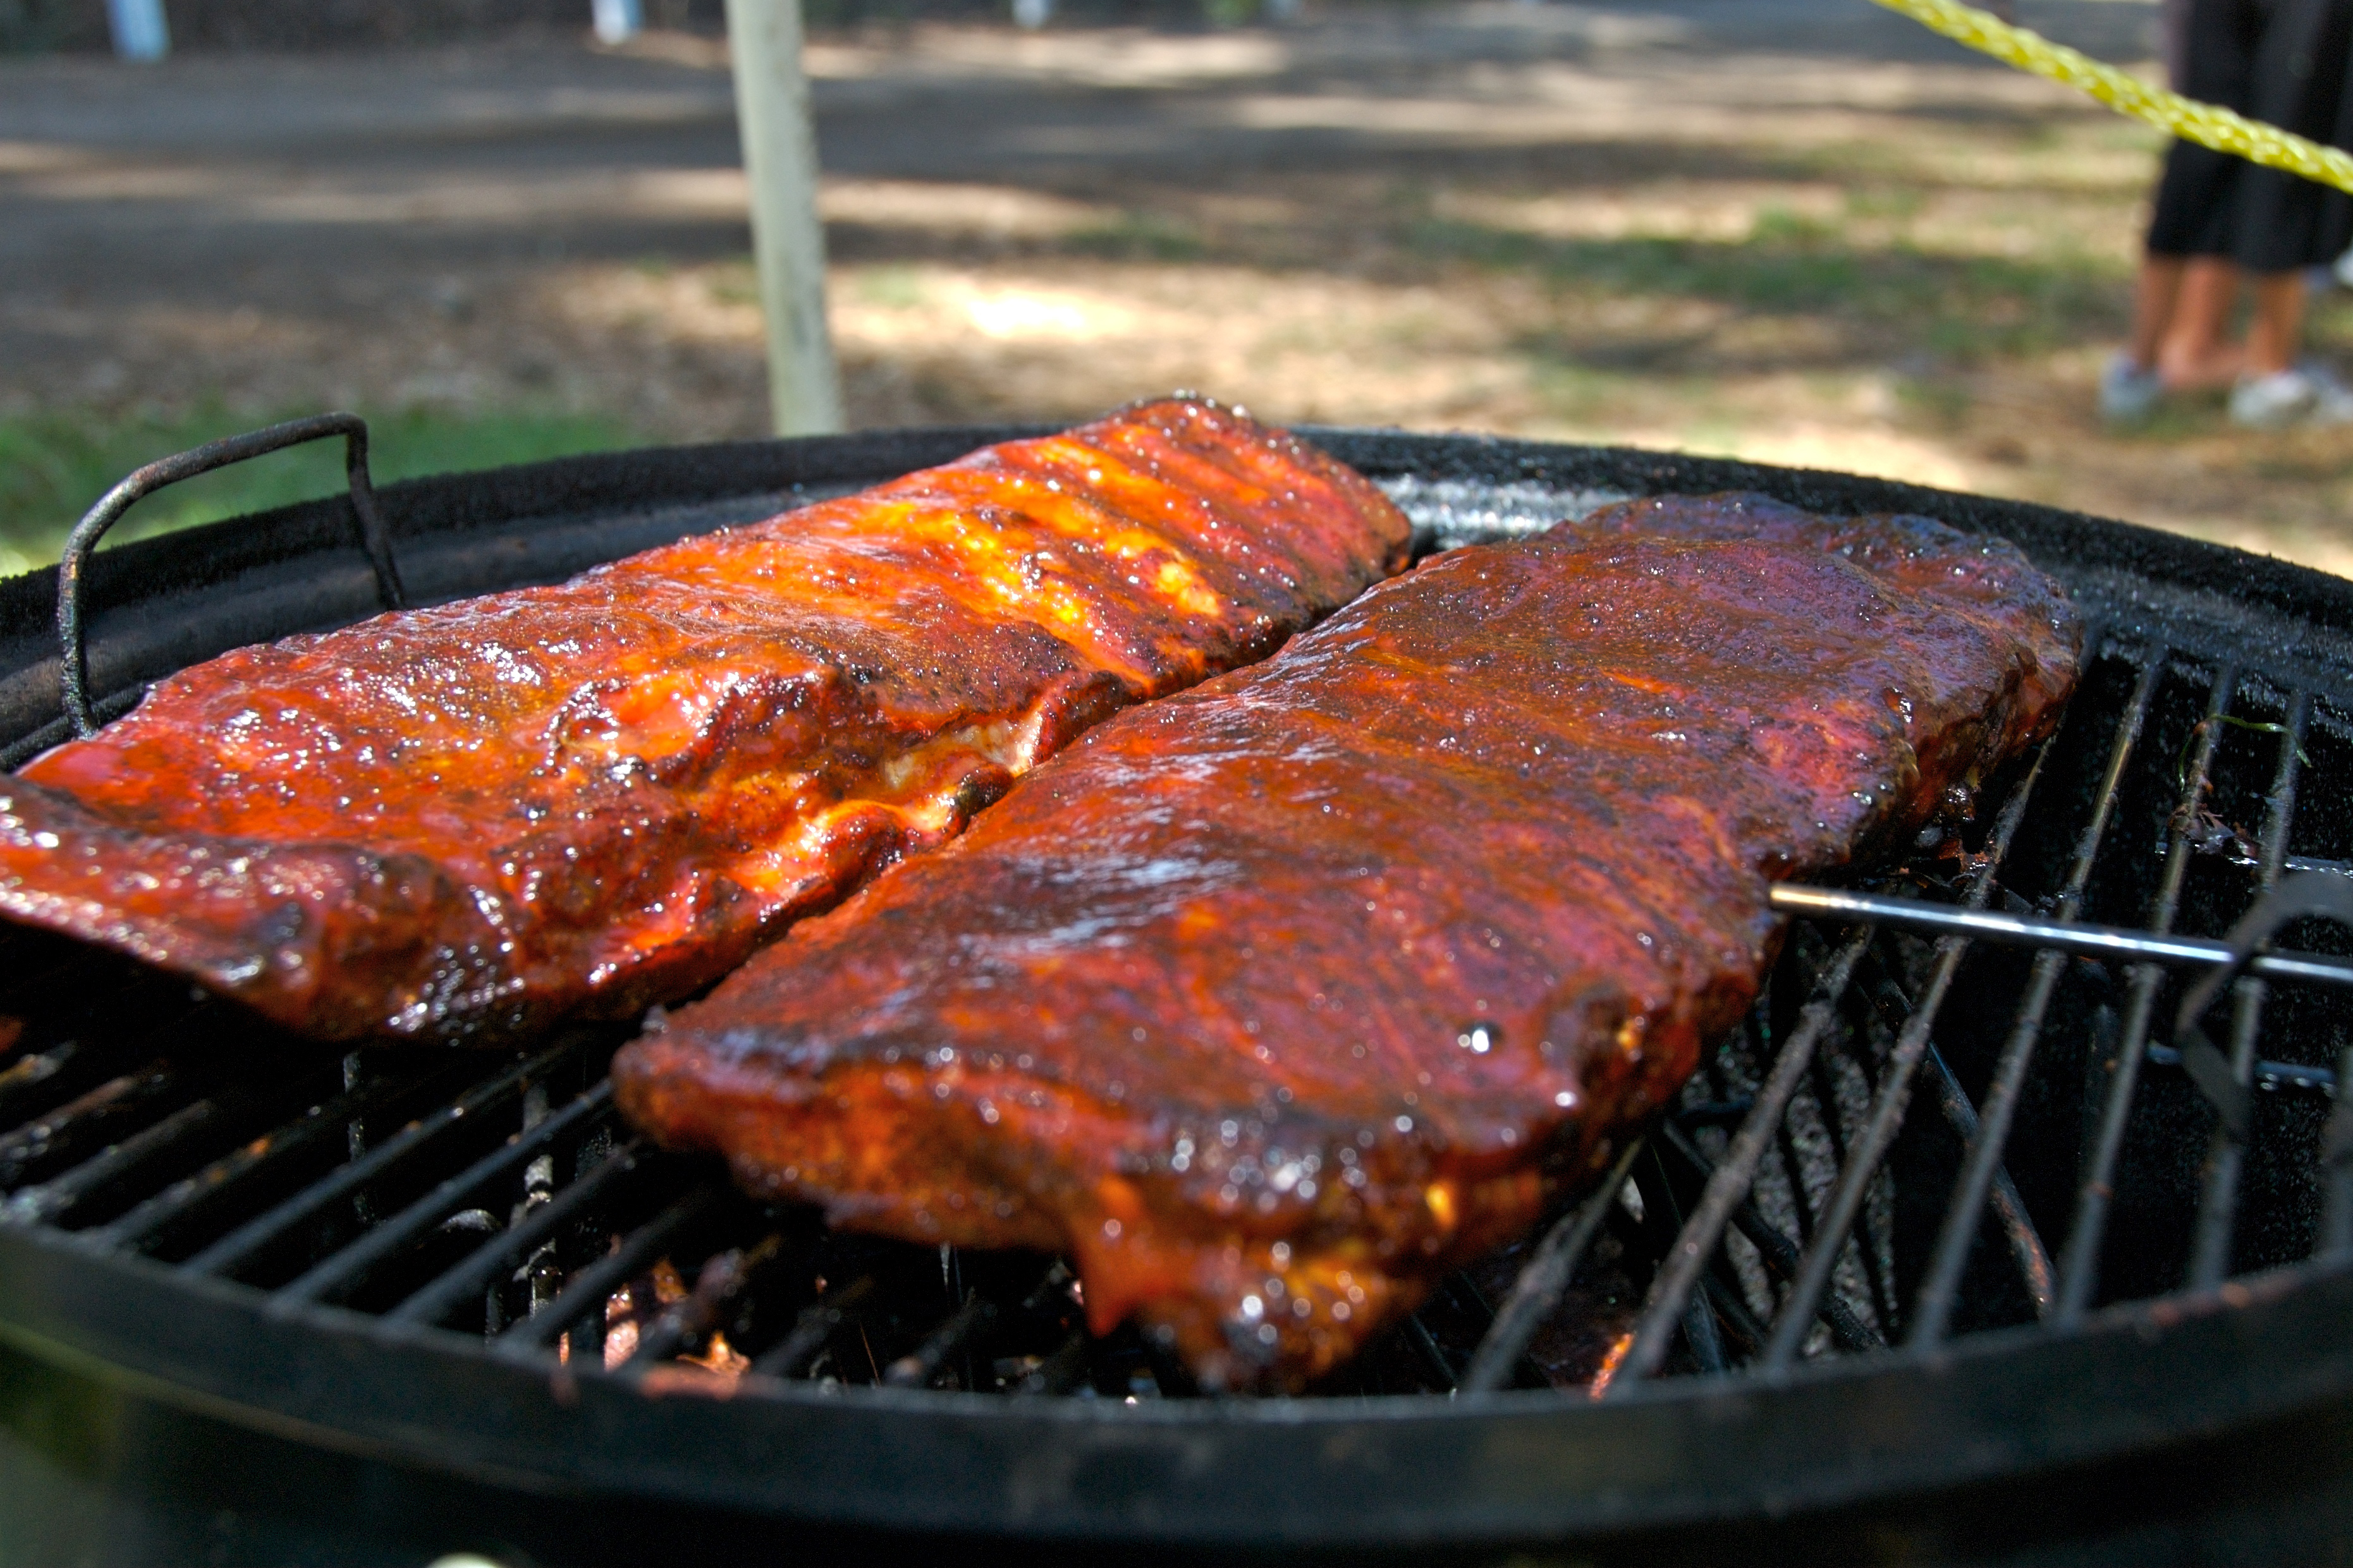 Herald Times food writer Lynn Schwartzberg says ribs are cooked perfectly when the meat doesn't fall off the bone, but you can still take a clean bite.